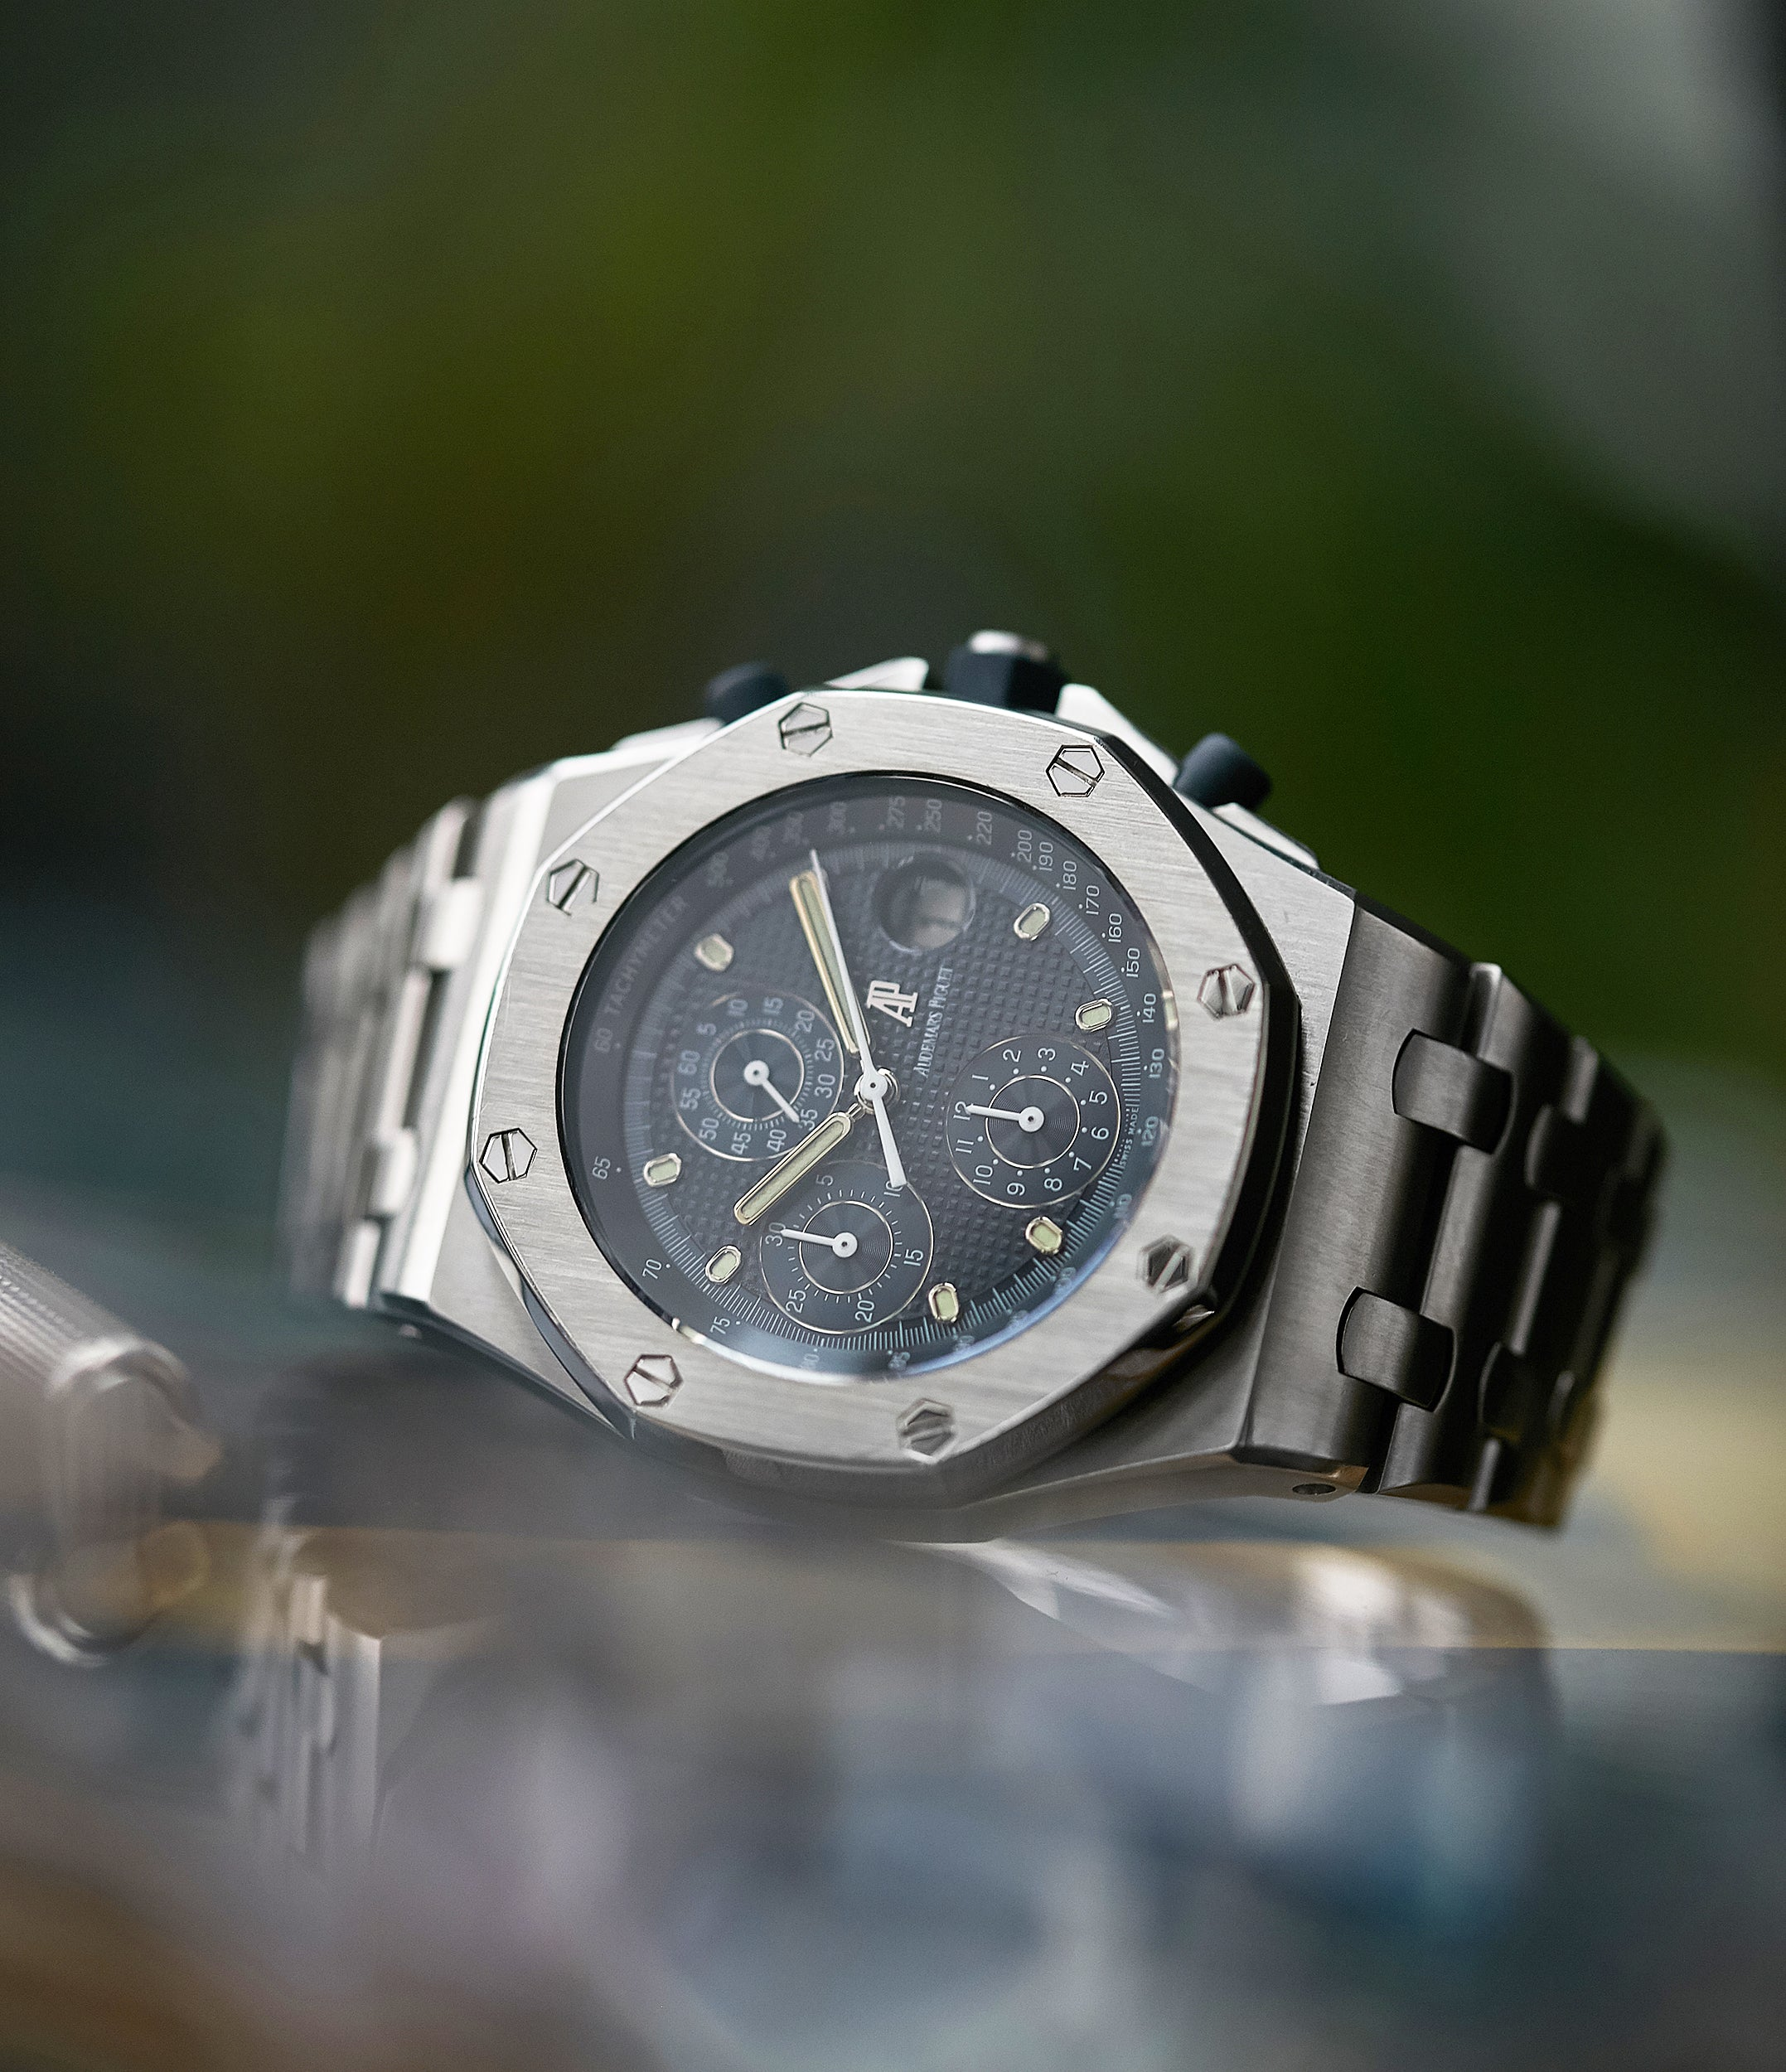 sell Audemars Piguet Royal Oak Offshore 'The Beast' 25721 steel vintage chronograph watch for sale online A Collected Man London UK specialist of rare watches